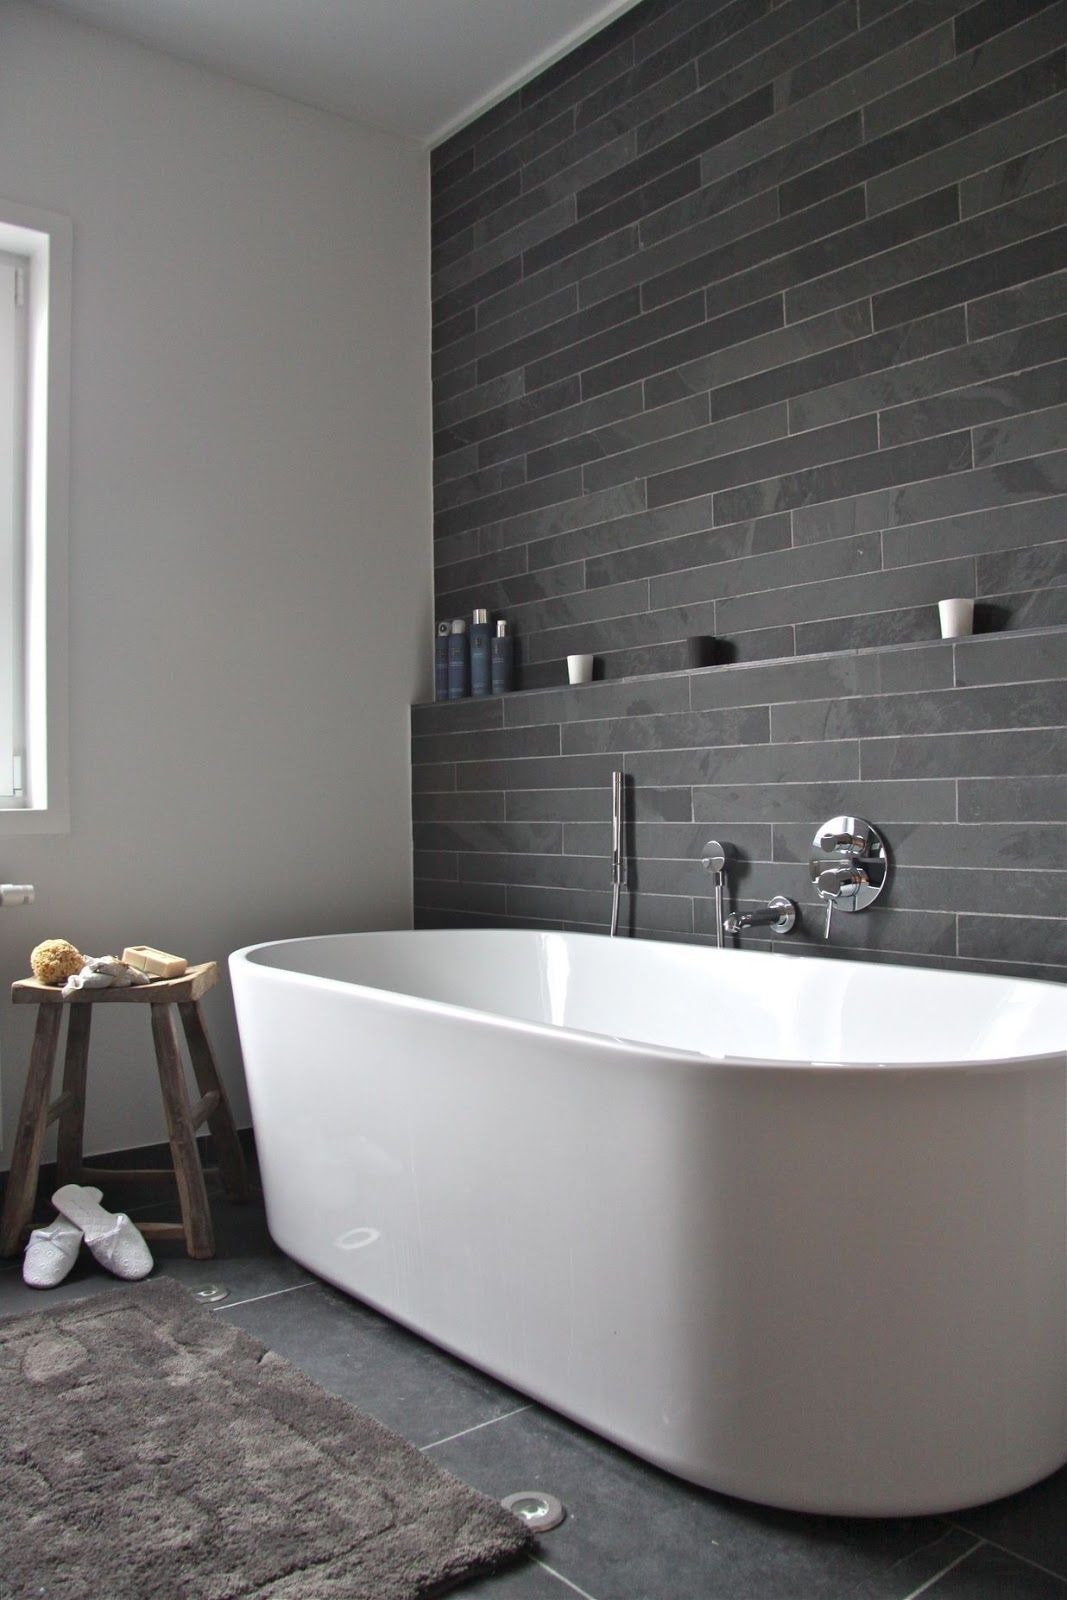 5 Beautiful Bathroom Renovation Ideas | Pinterest | Tubs, Water and ...